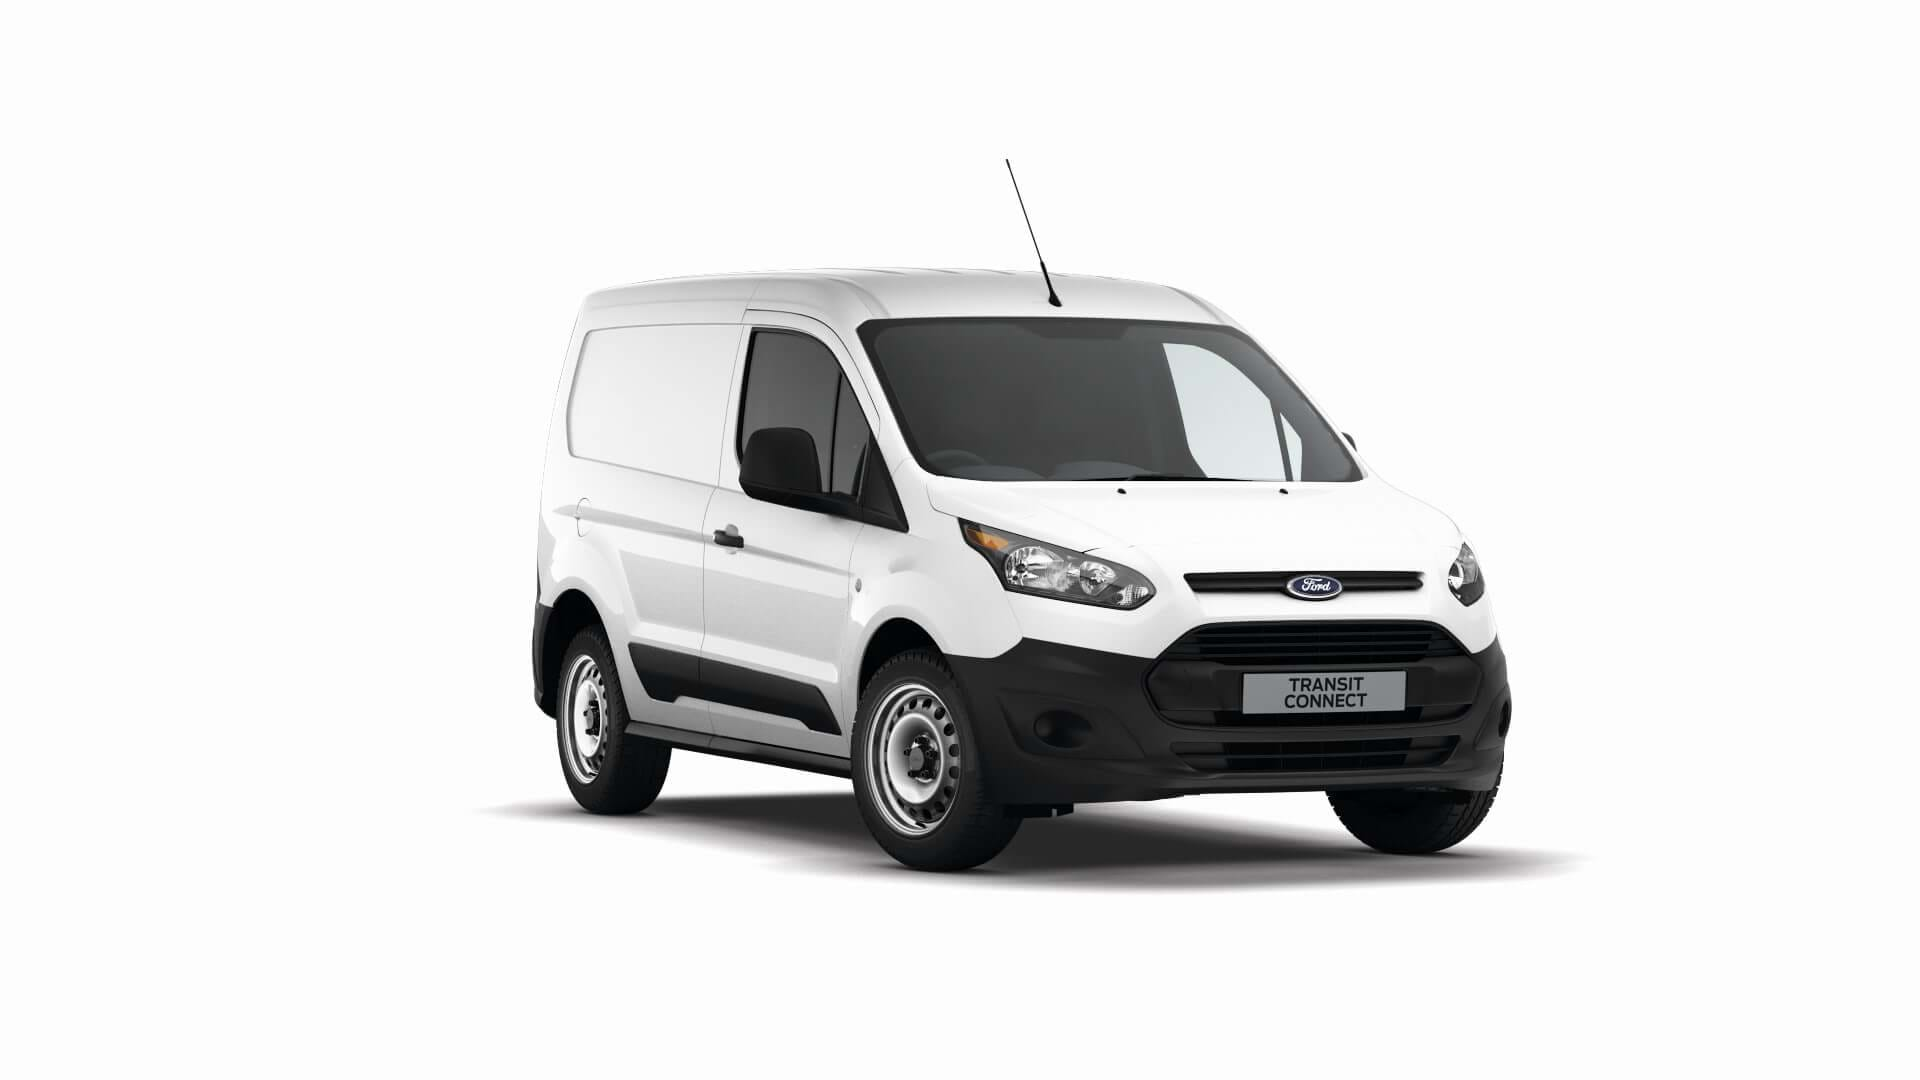 Ford Transit Connect SWB Image